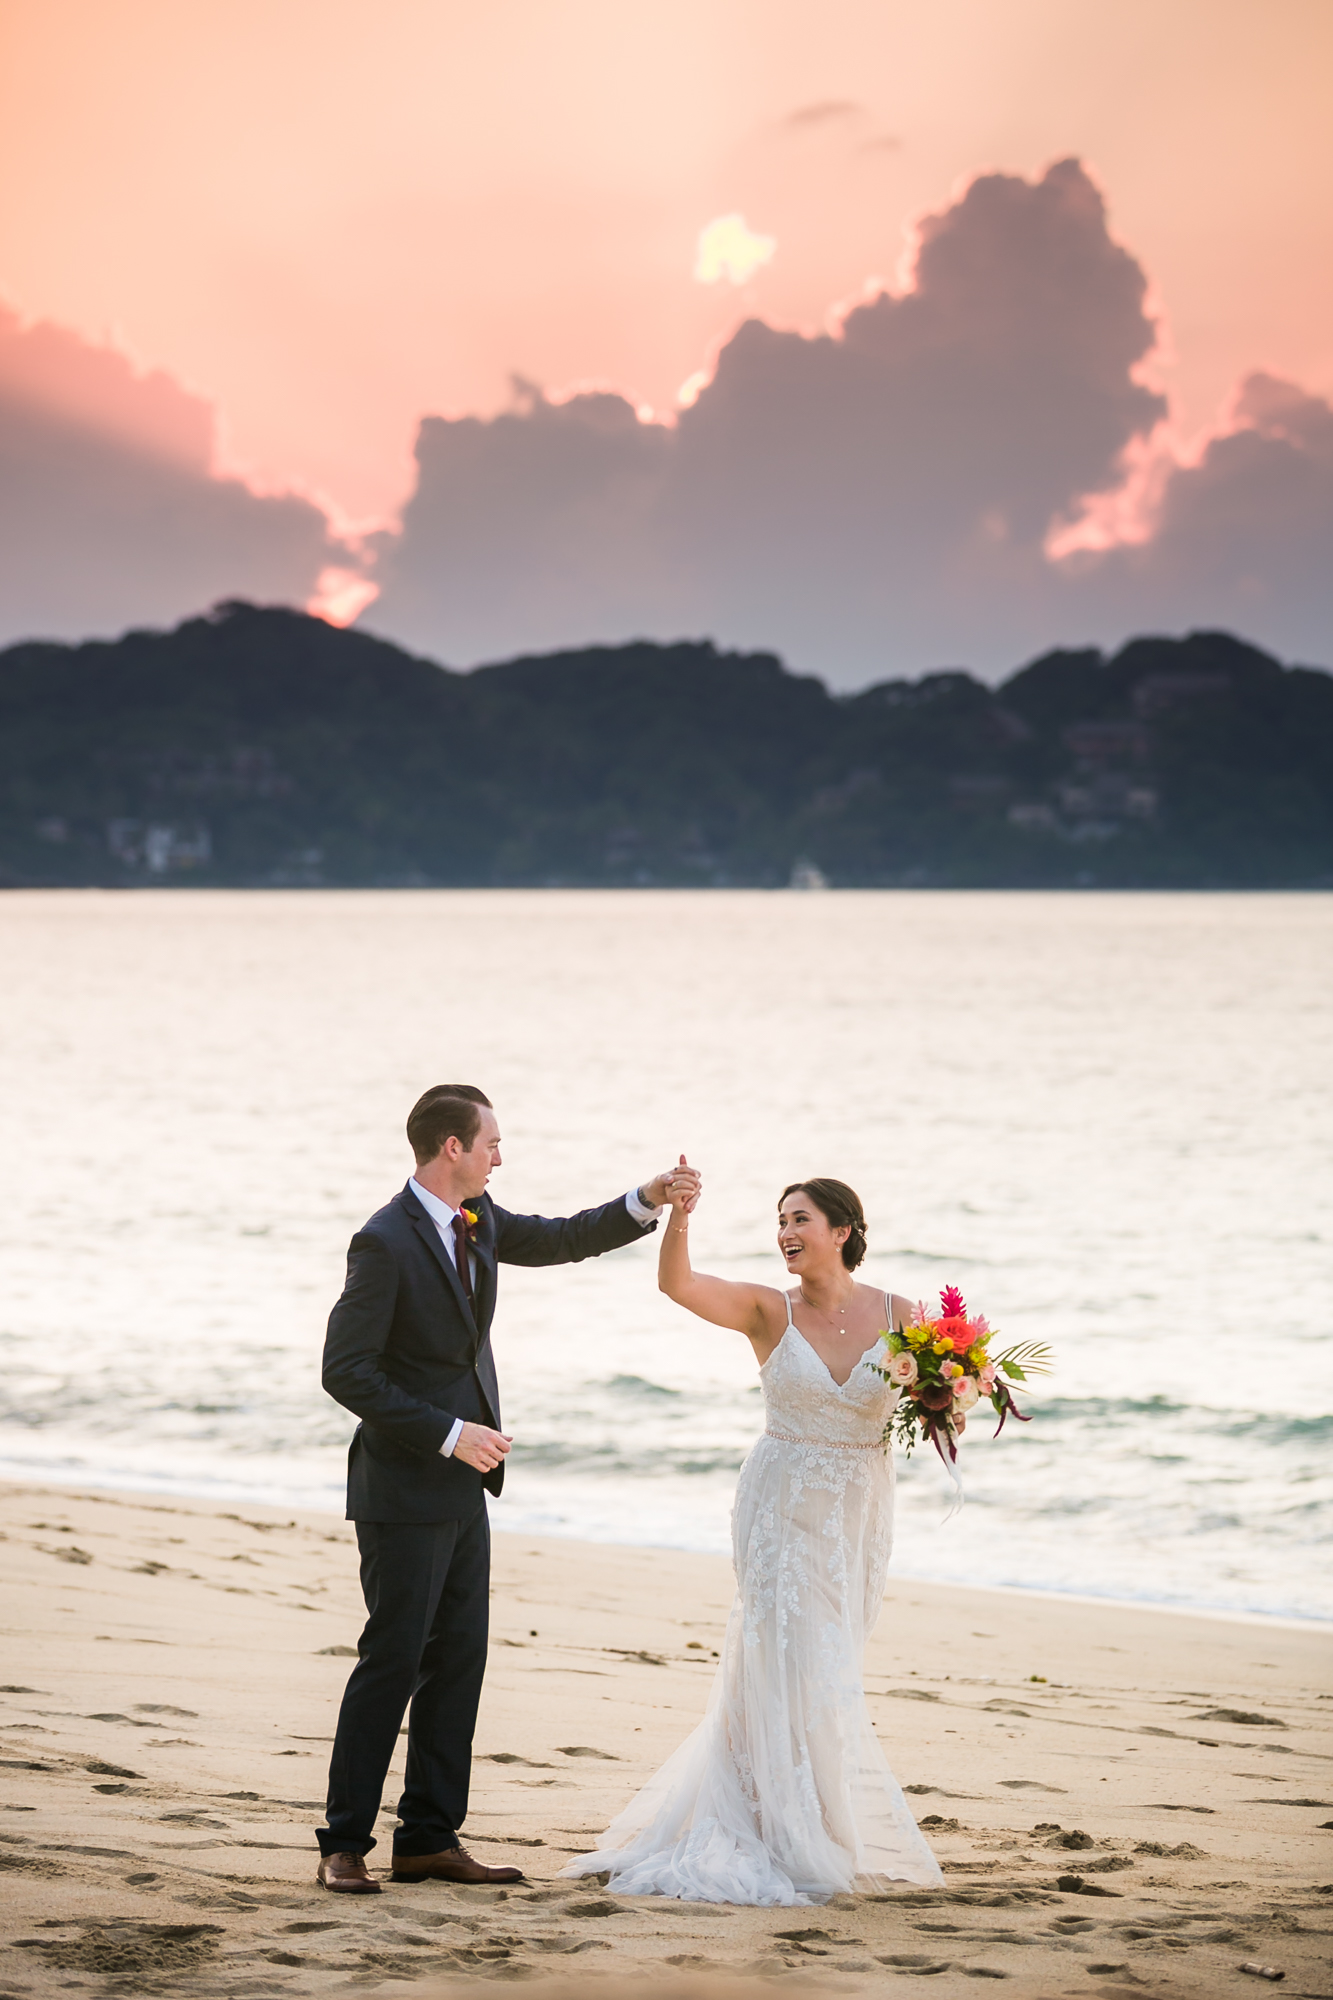 ES-Flor-De-Playa-Sayulita-Mexico-Wedding 456.jpg